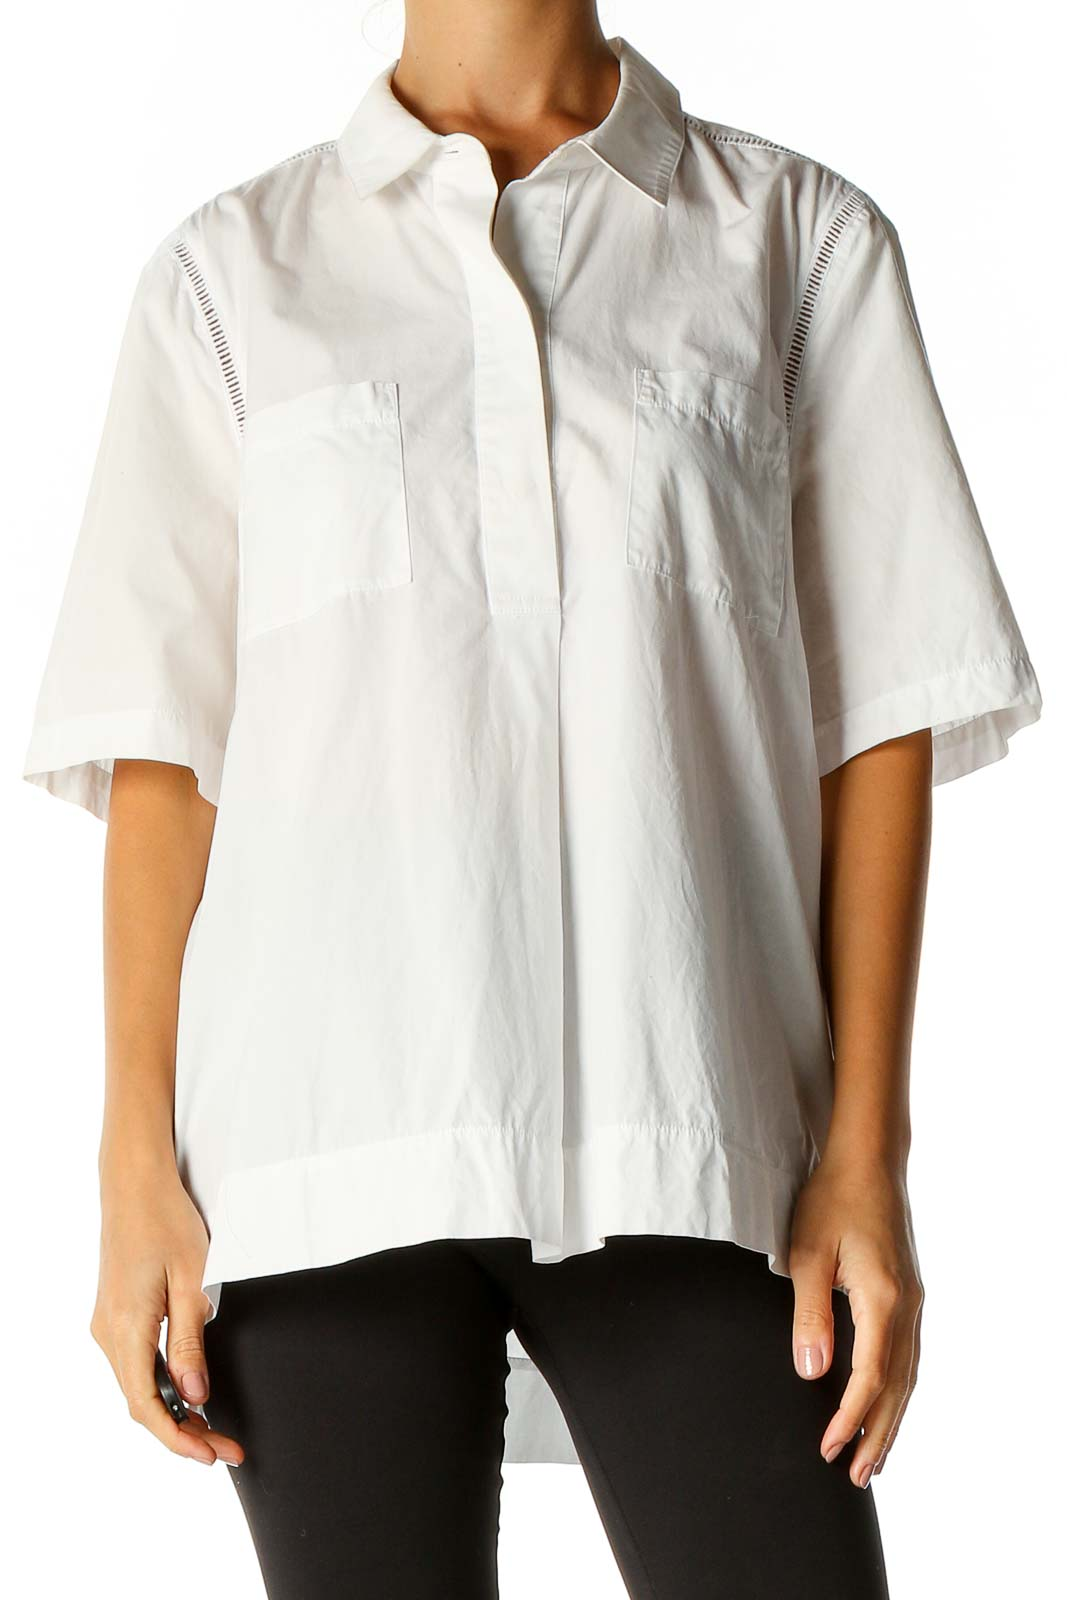 White Solid Casual Shirt Front